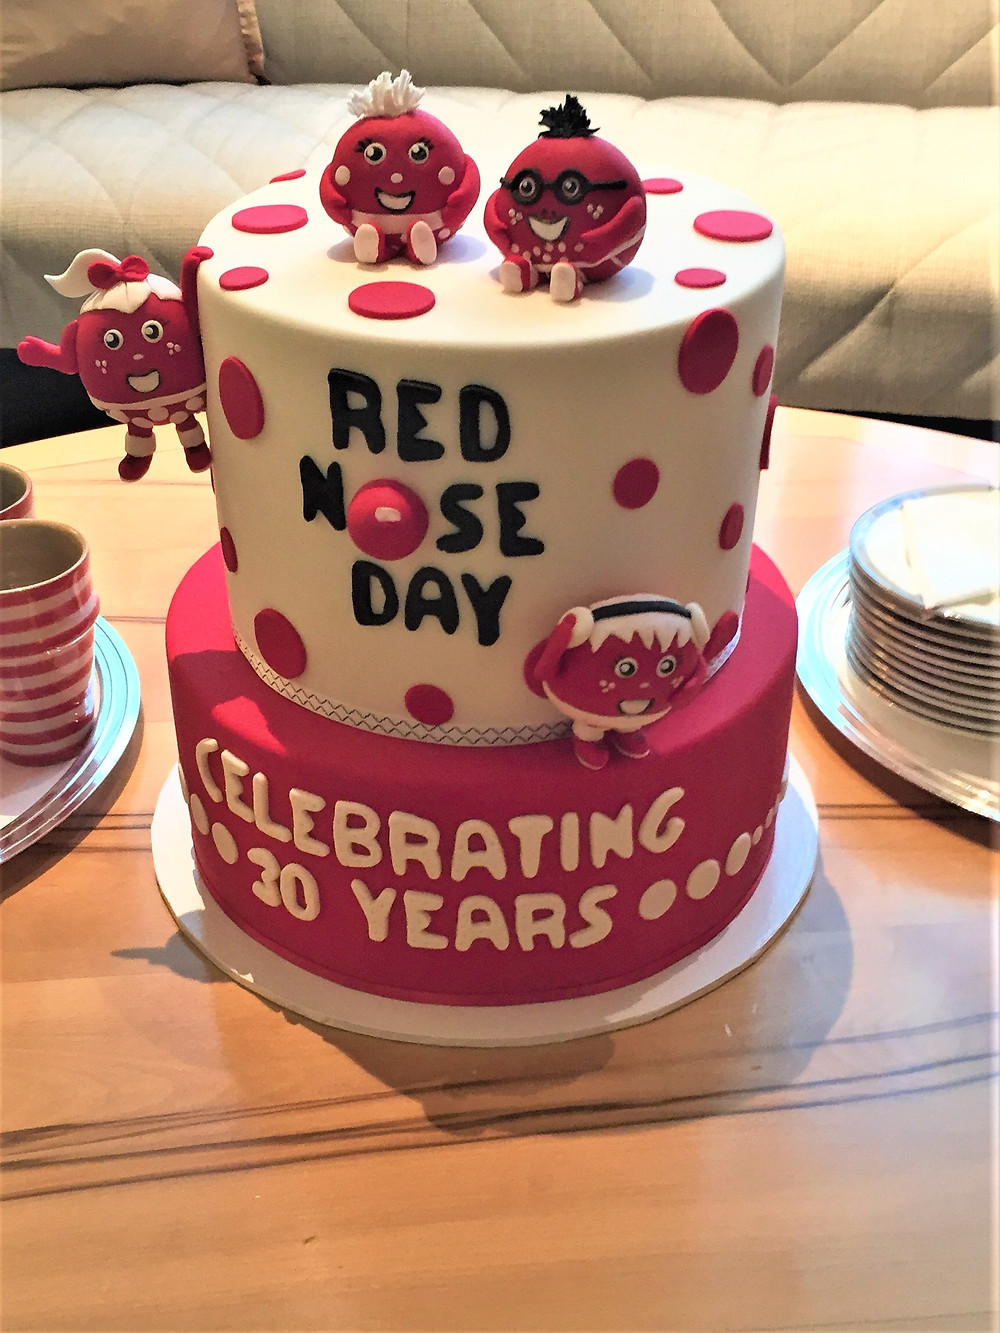 Red Nose Day turns 30